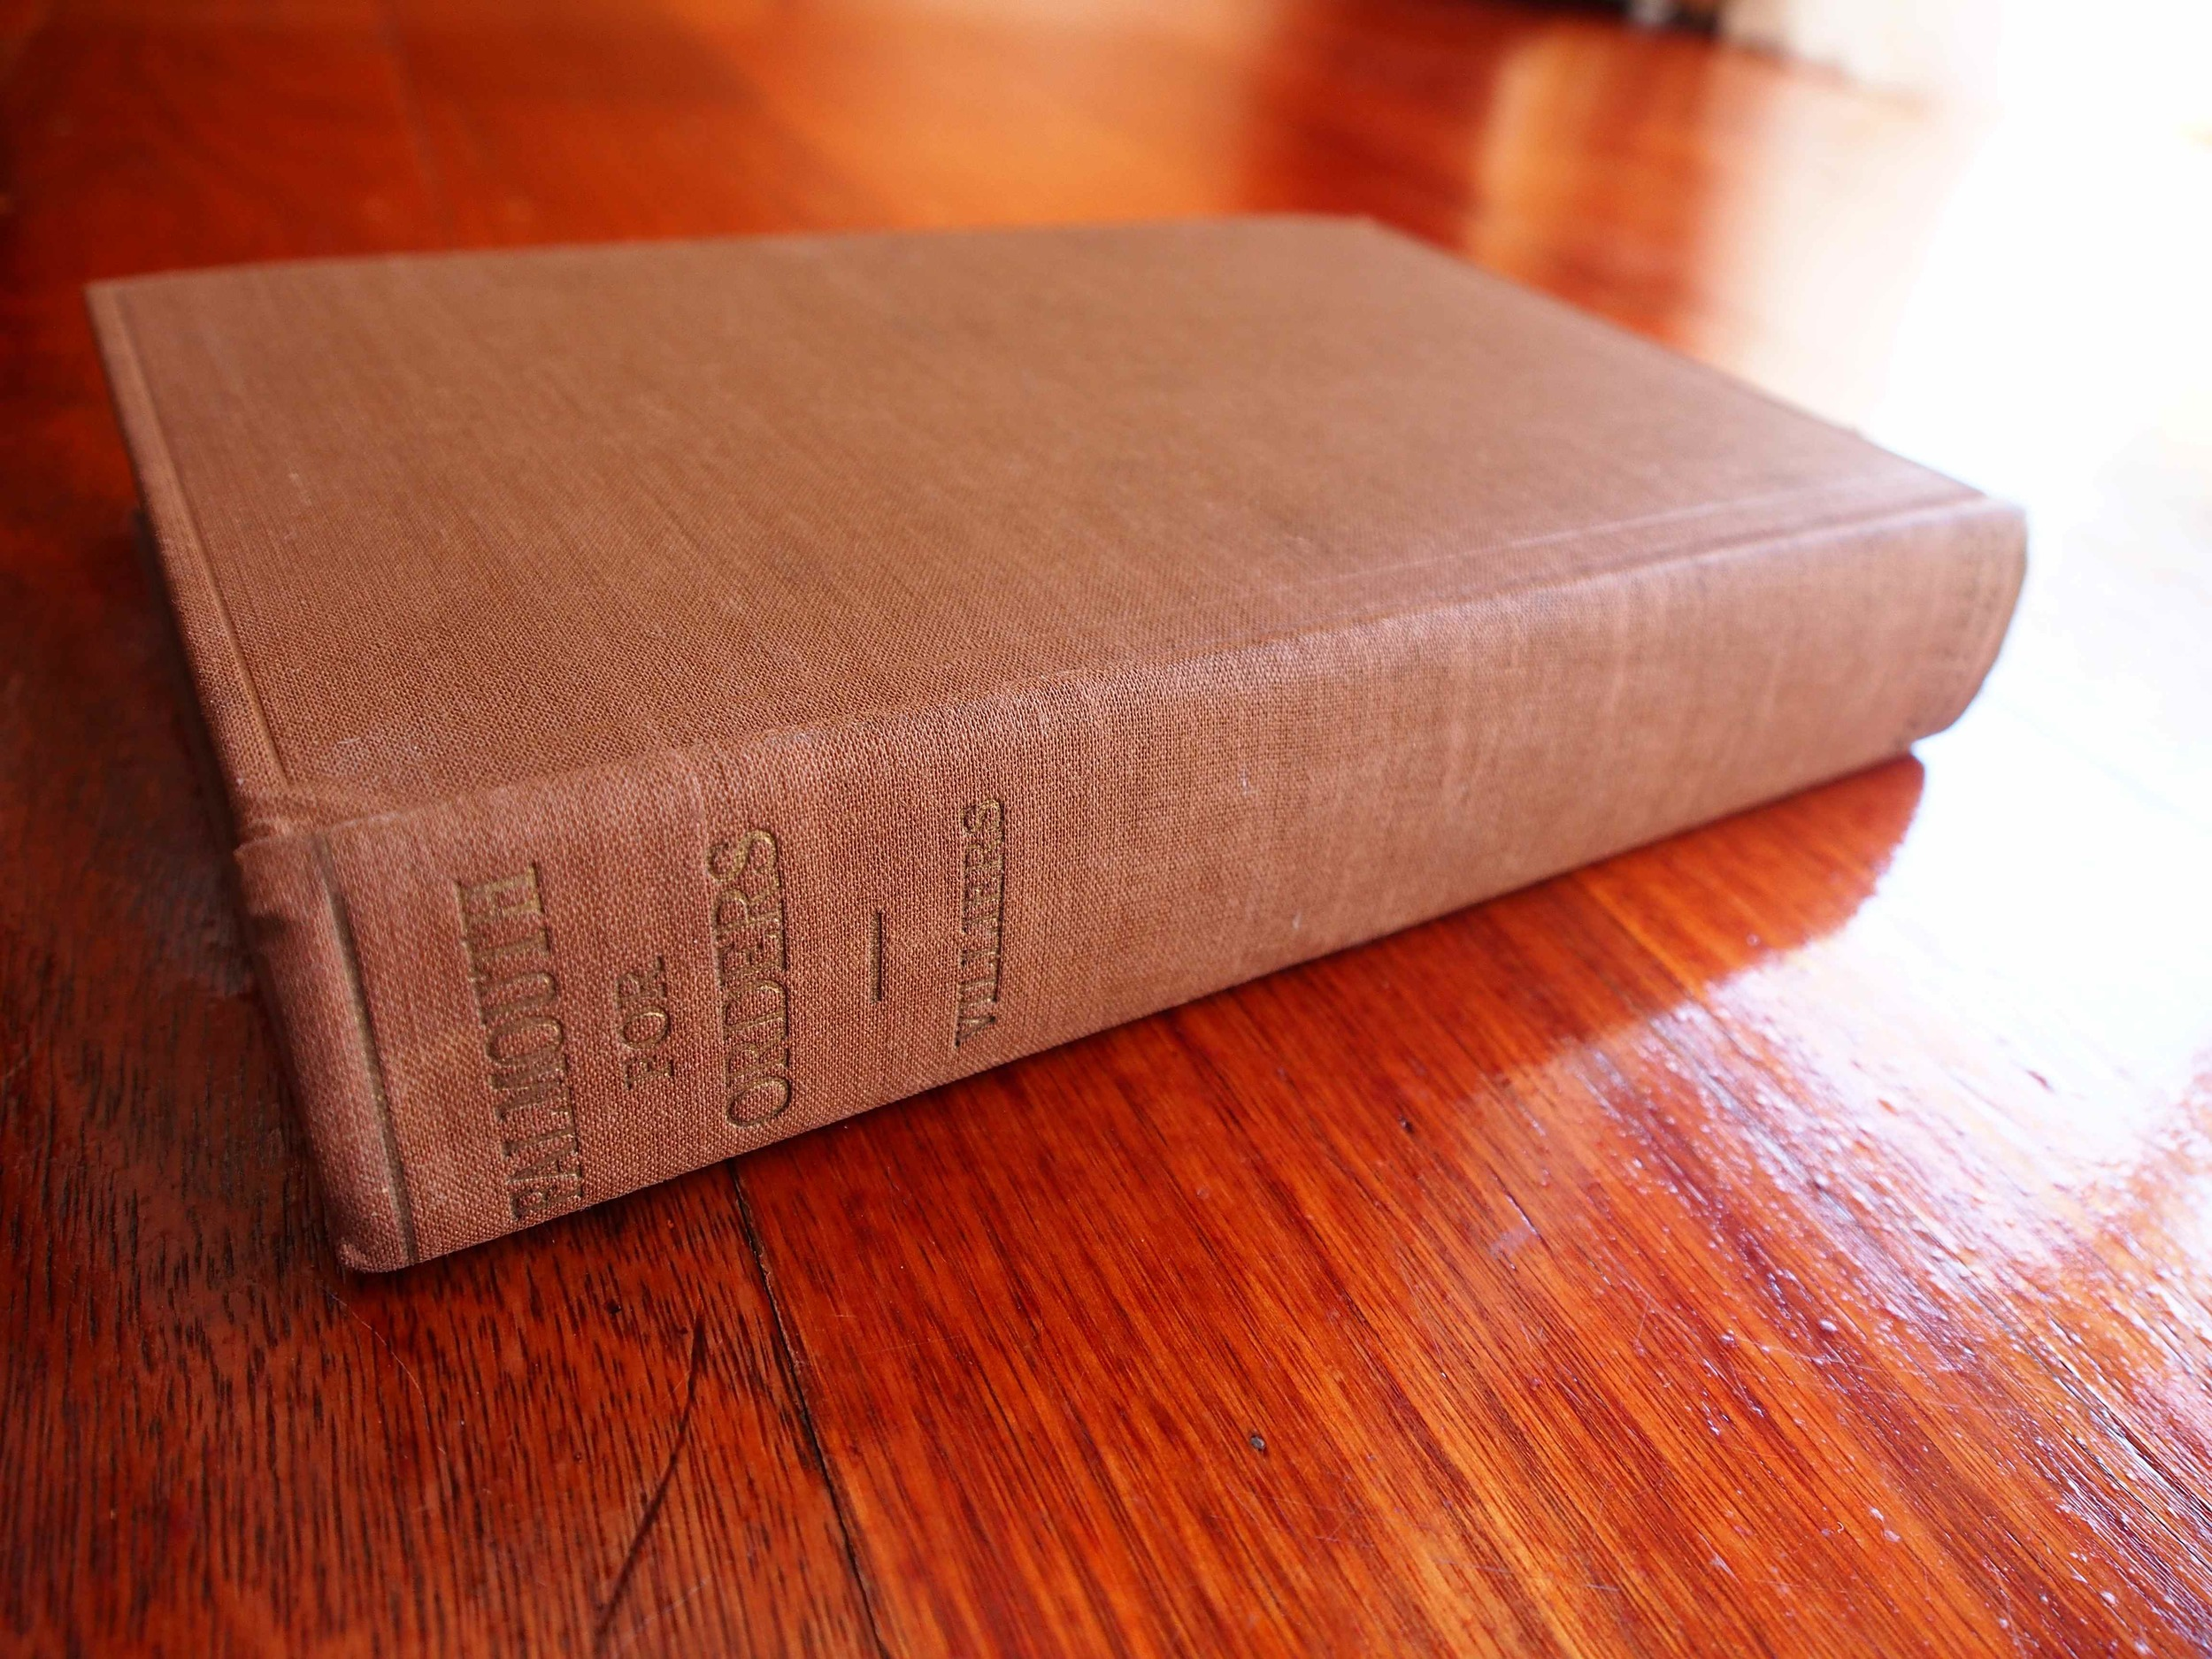 This book is out of copyright so I thought I would show you how beautiful an eighty-four-year-old book looks!